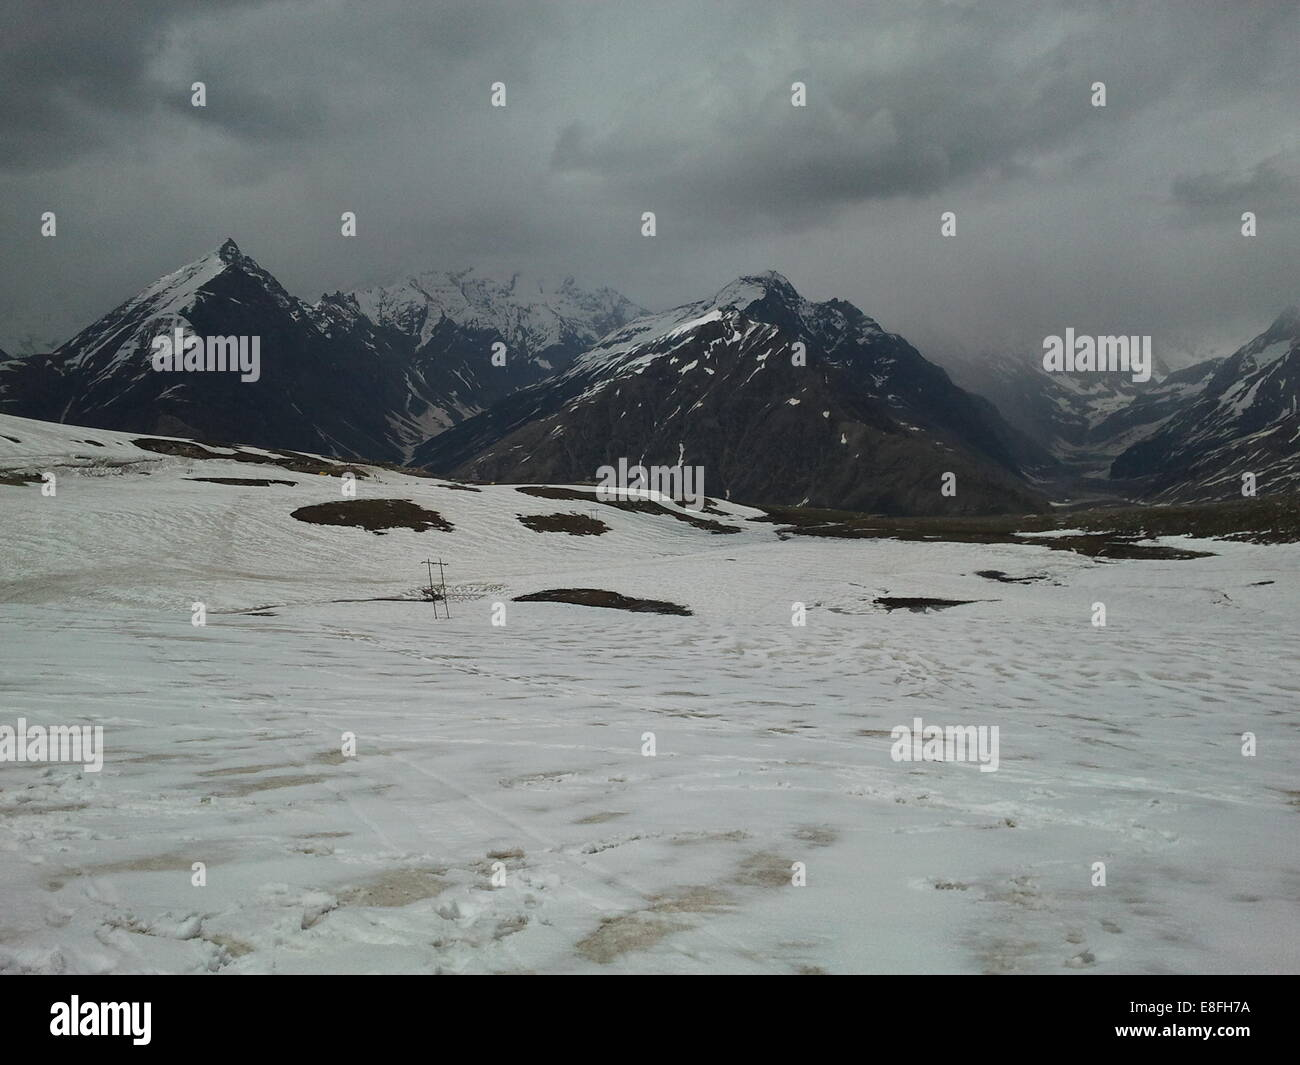 Mountain landscape, Manali, Himachal Pradesh, India - Stock Image